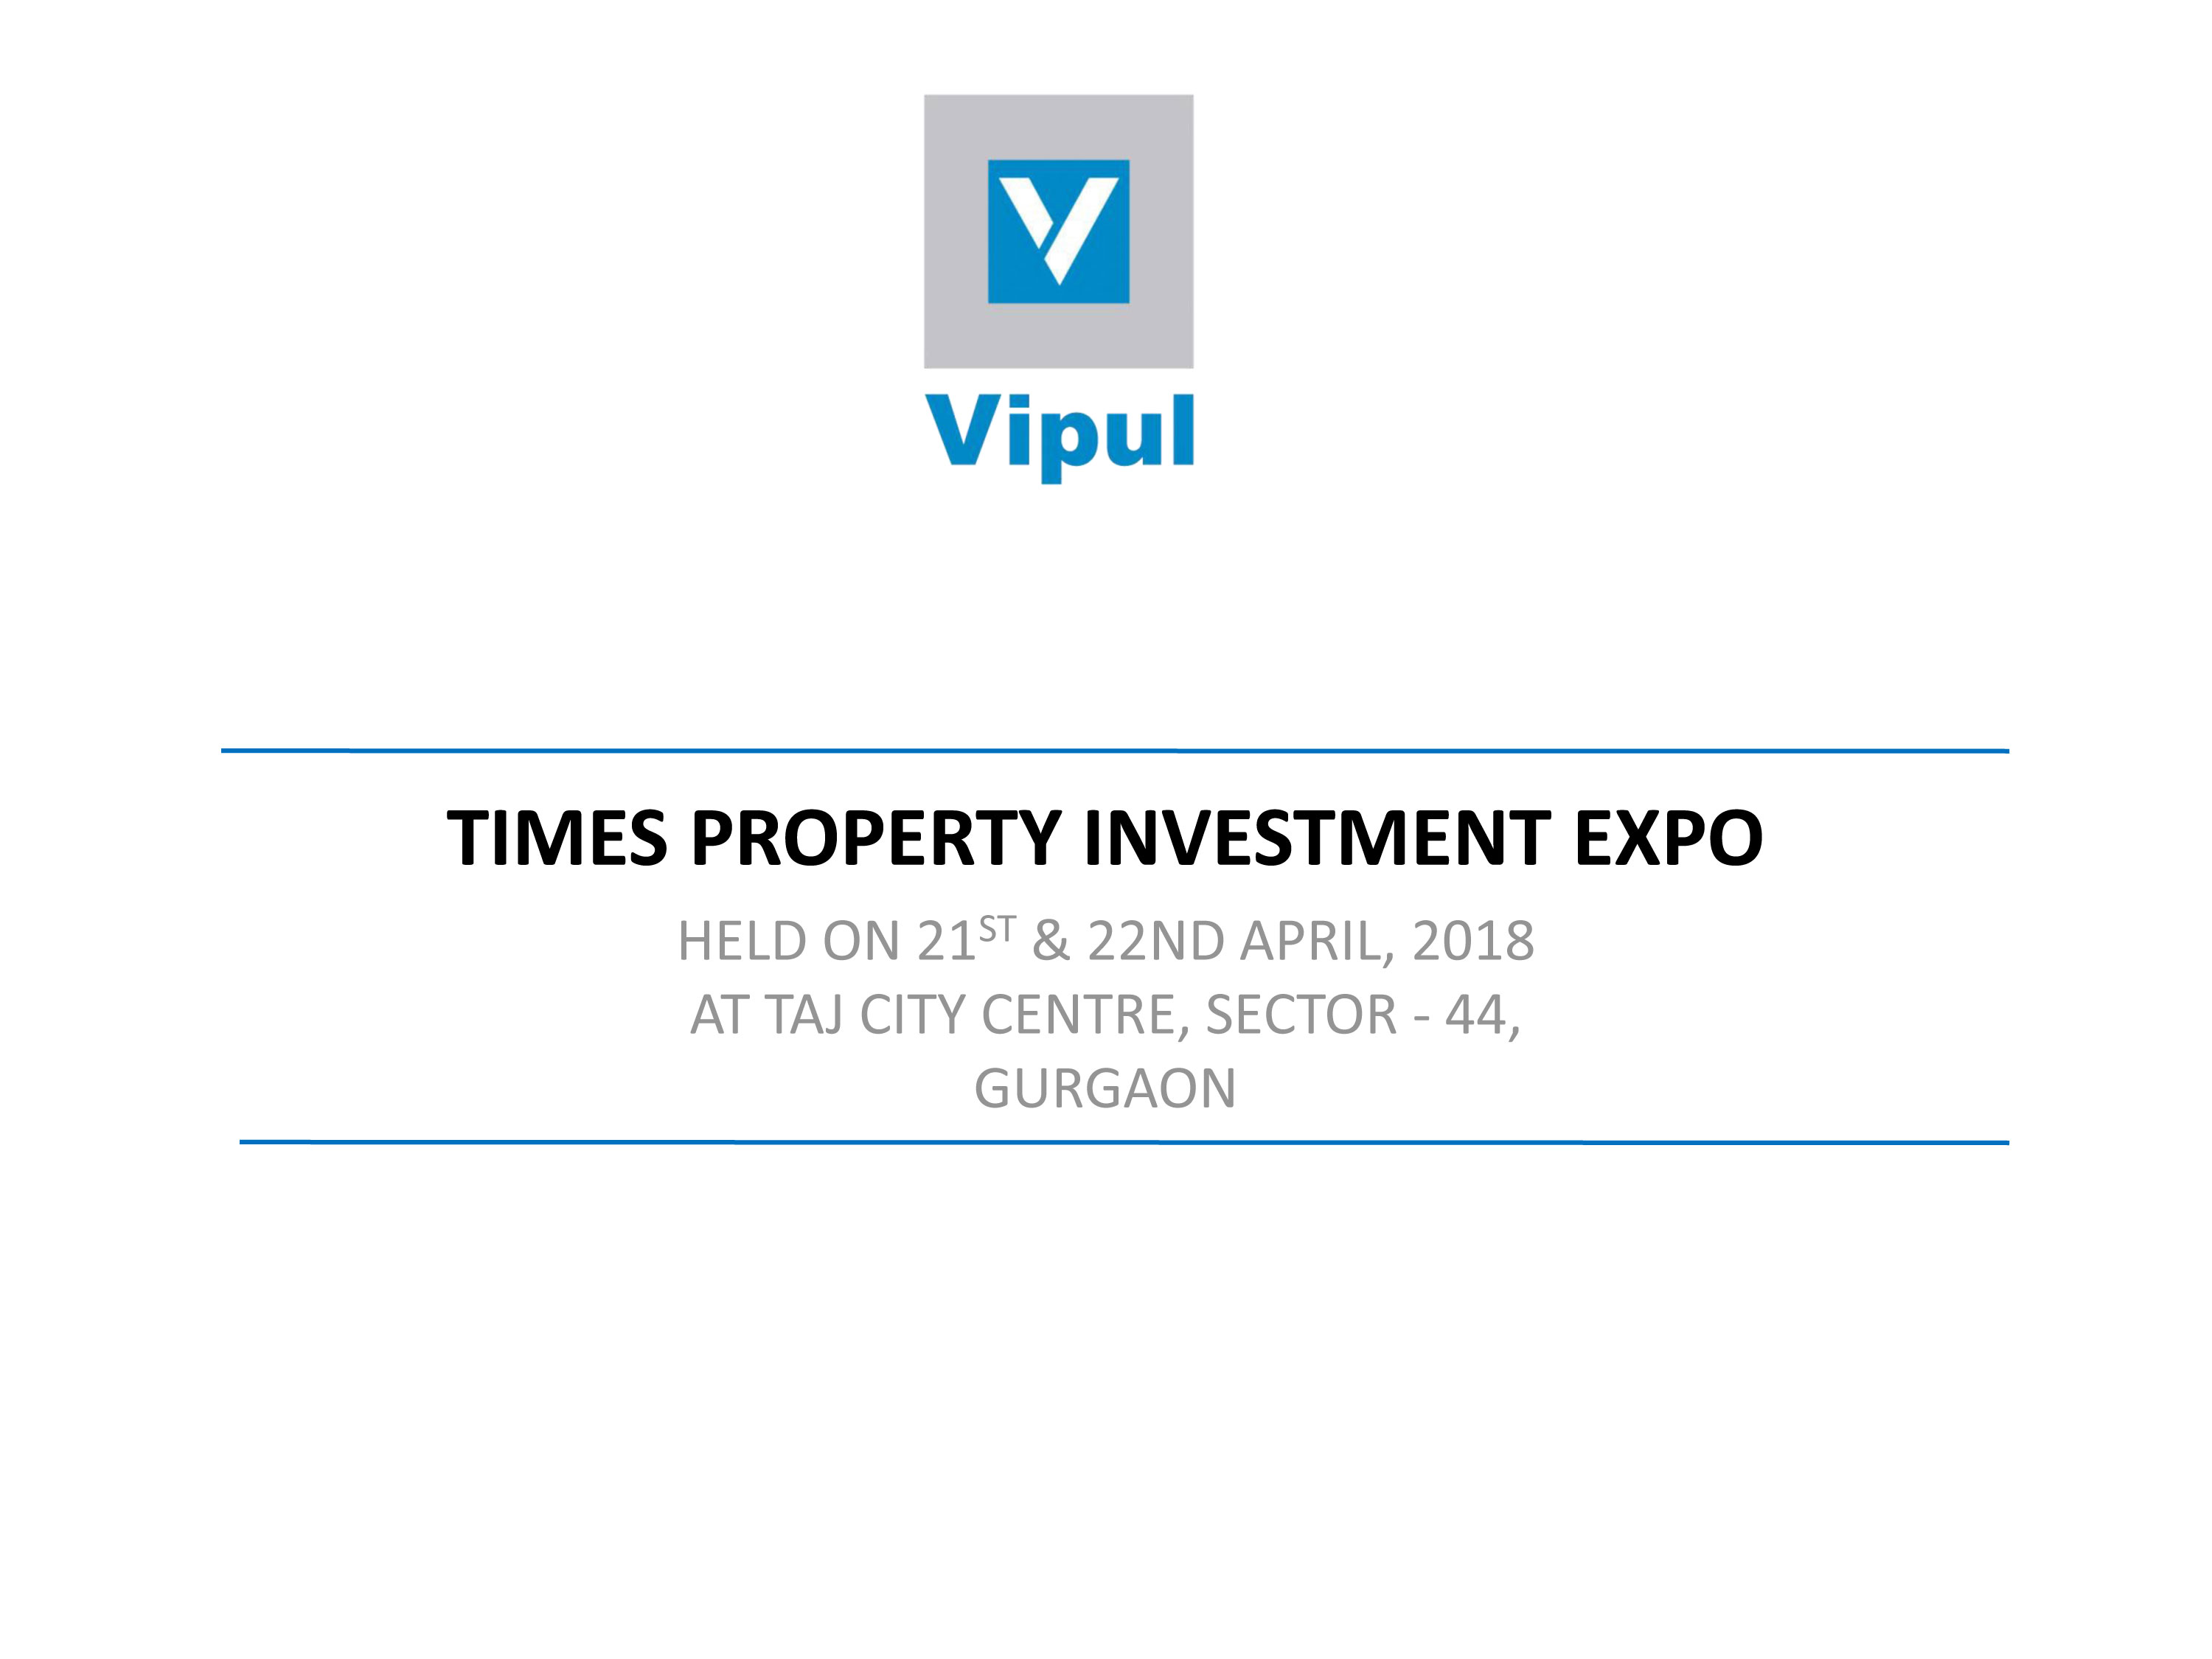 TIMES PROPERTY INVESTMENT EXPO : 21 & 22 April 18